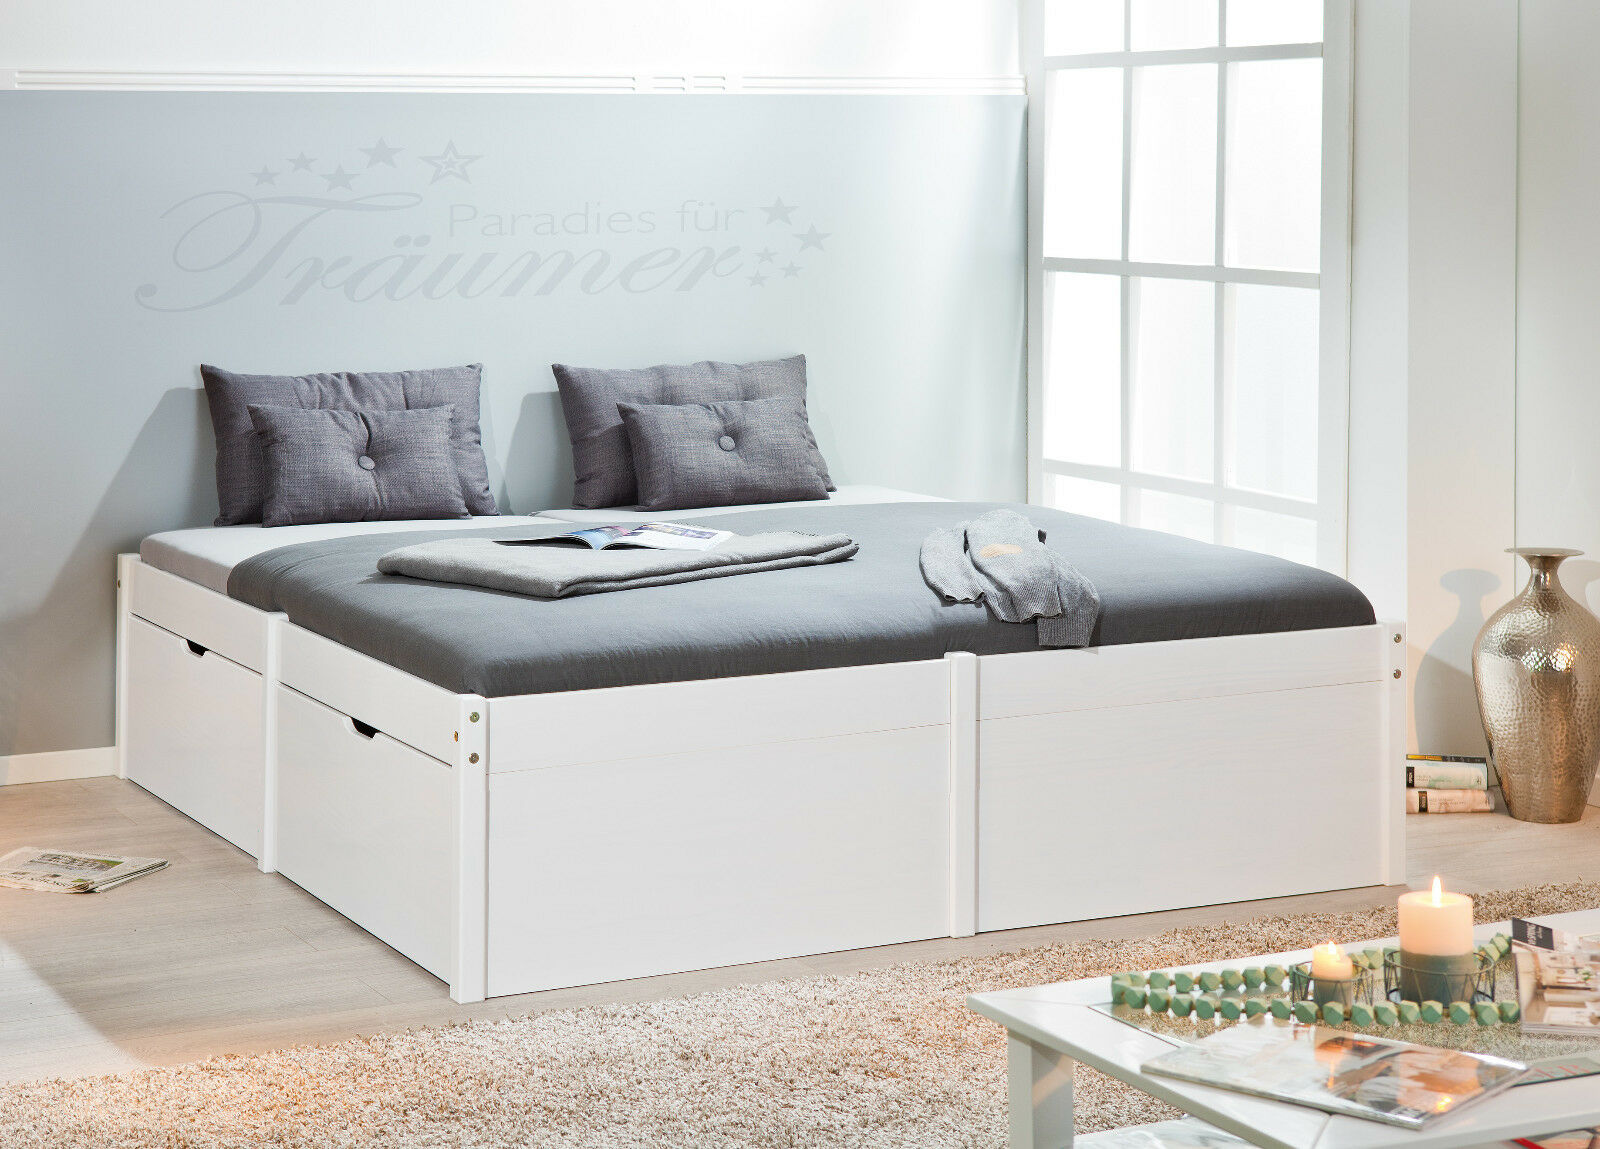 bettgestell funktionsbett 140 x 200 cm massivholz wei viel stauraum neu eur 399 00. Black Bedroom Furniture Sets. Home Design Ideas